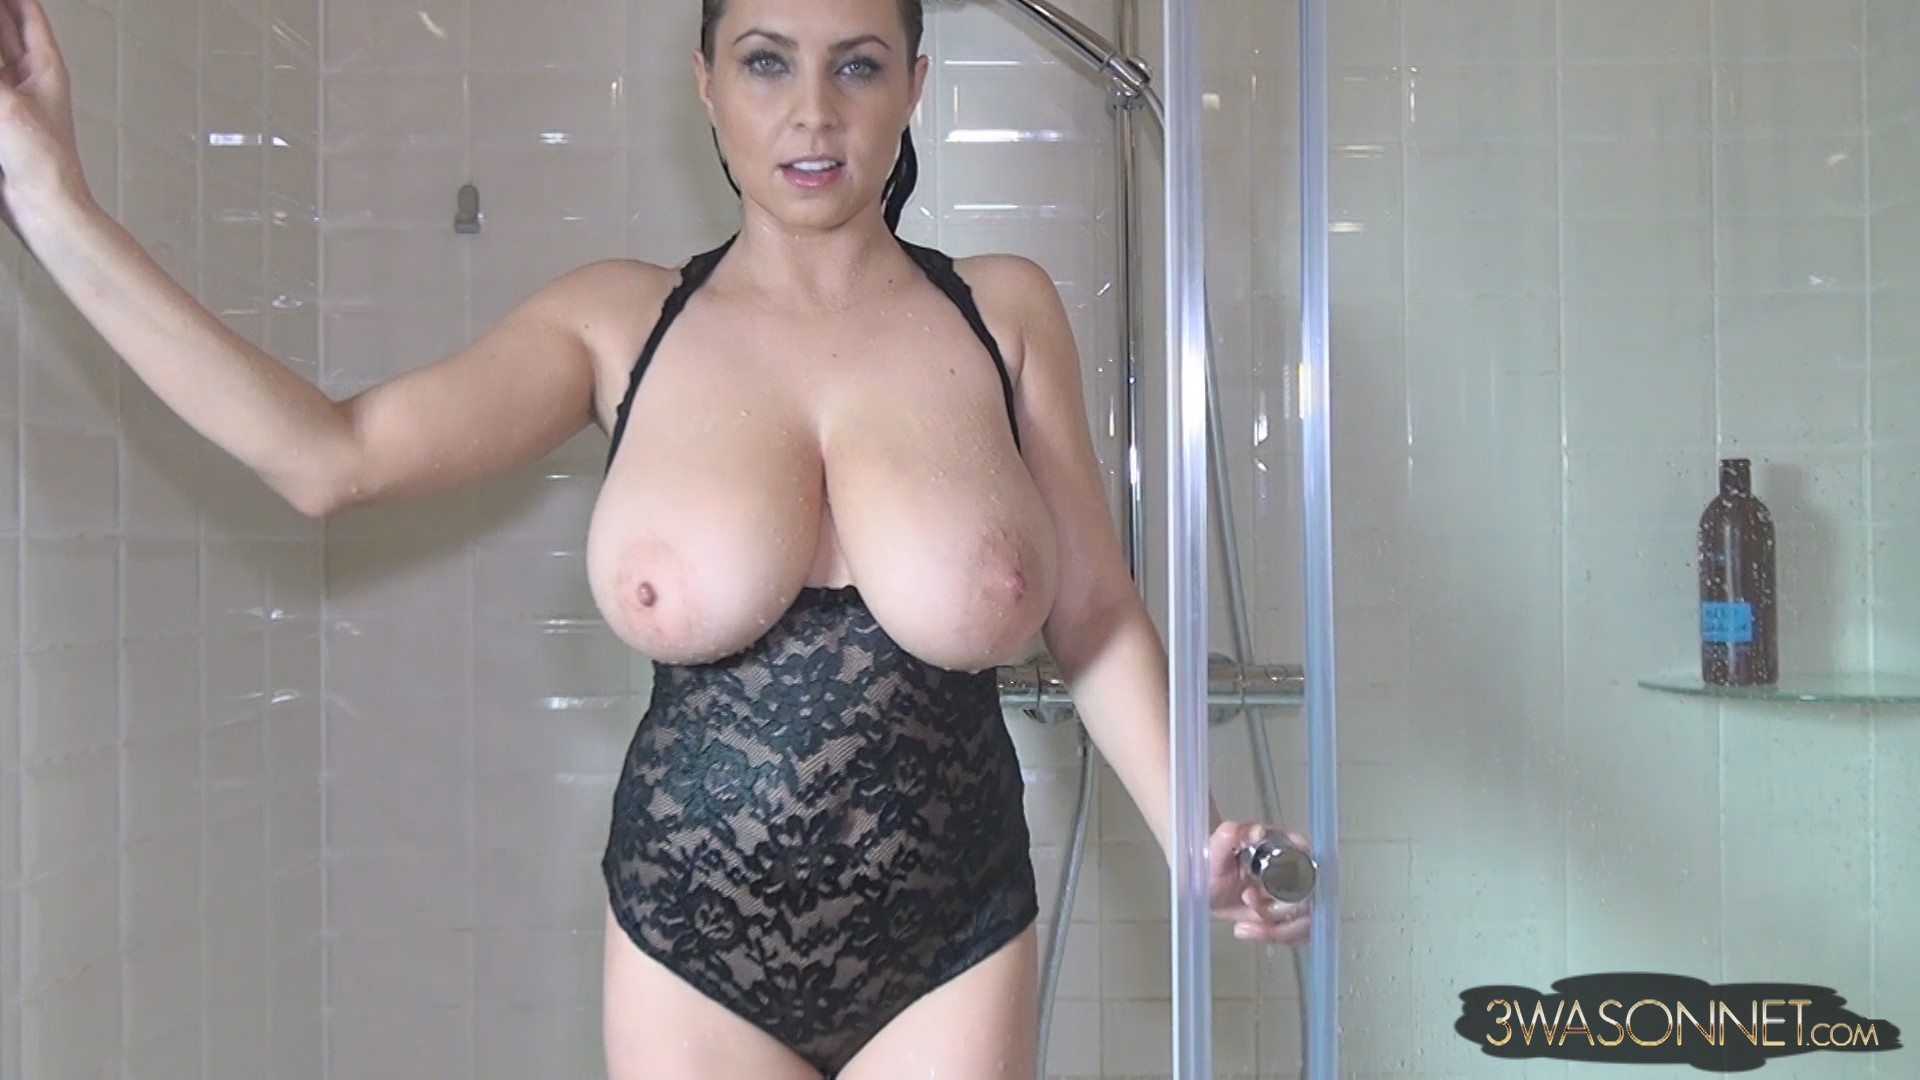 The Ewa sonnet nude in shower Riding